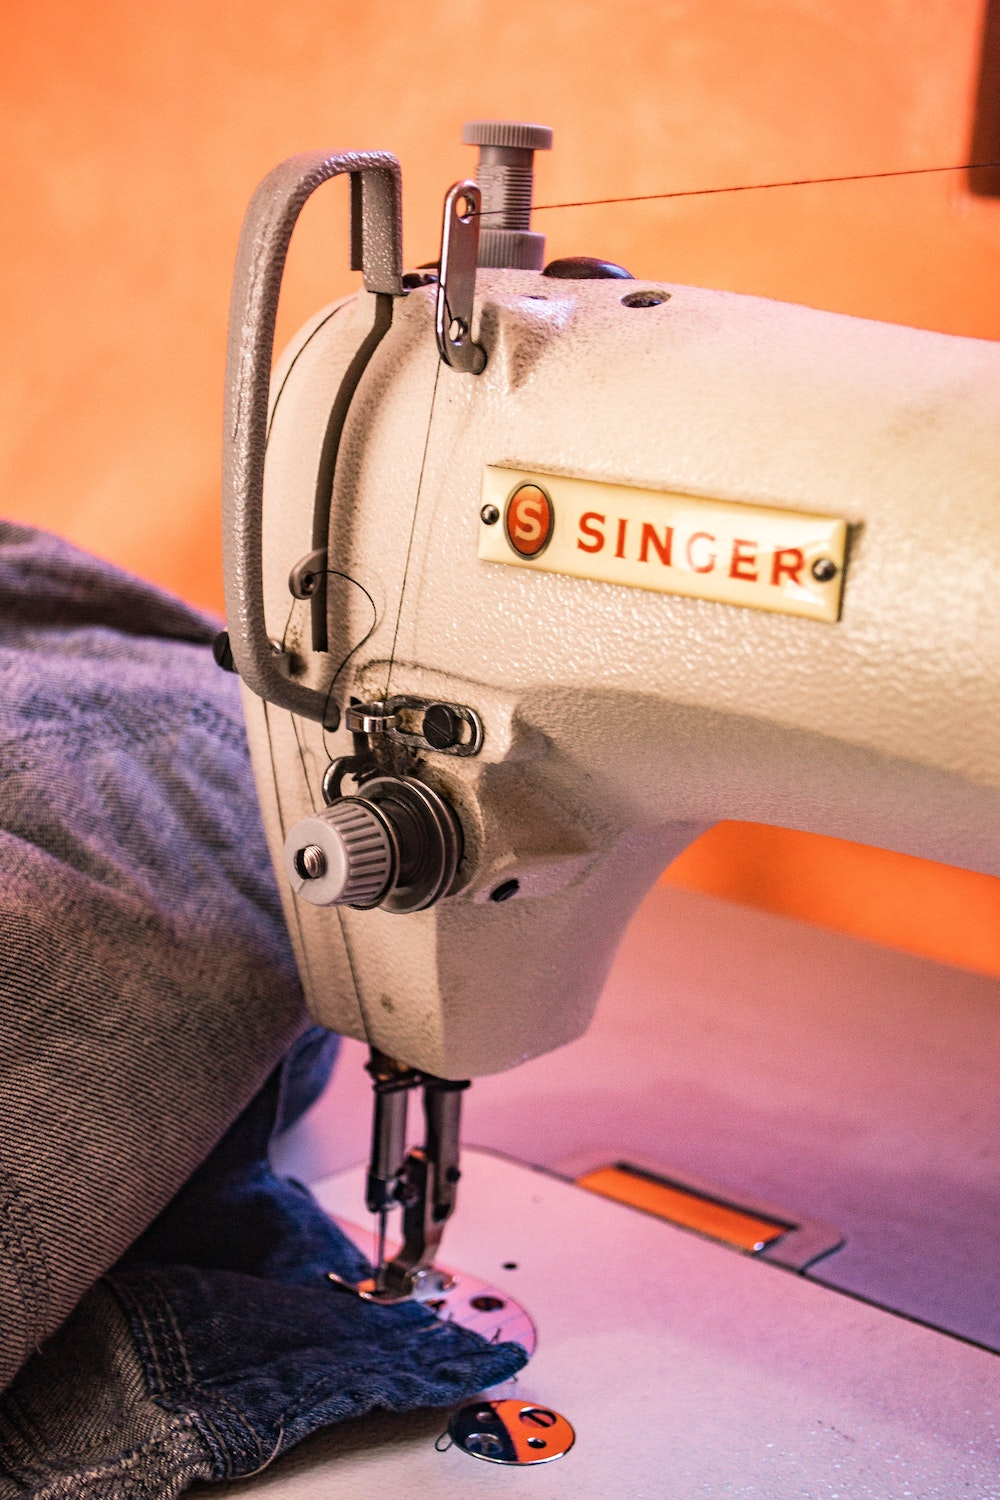 Denim Sewing machine